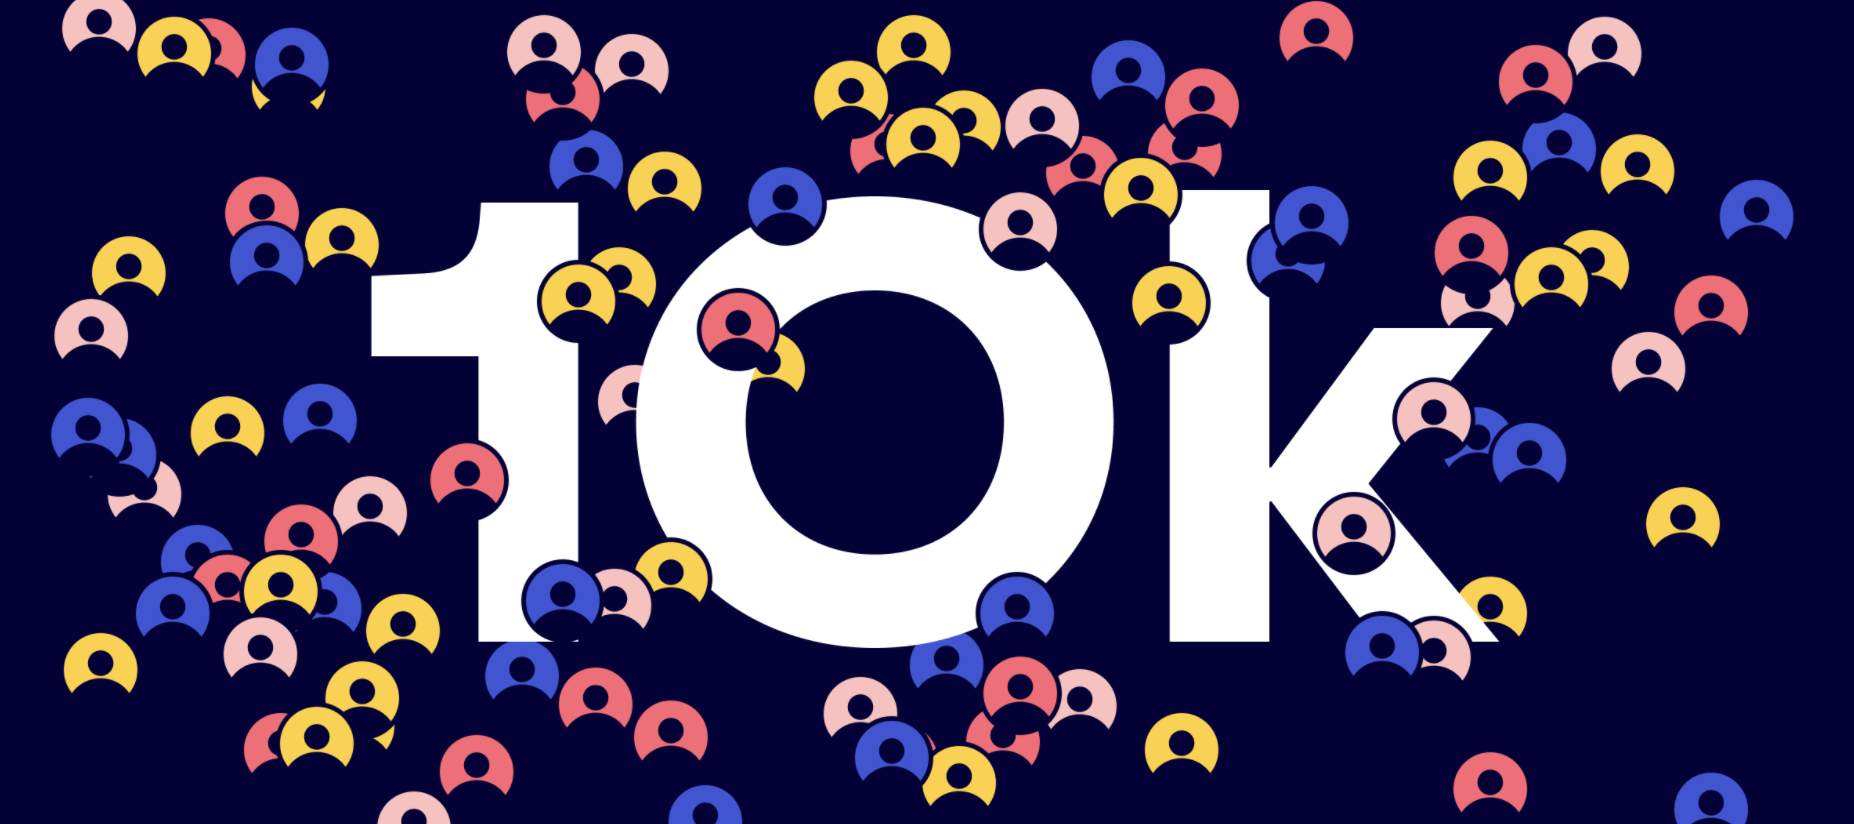 Miro Online Community: 10,000 members and counting 🚀